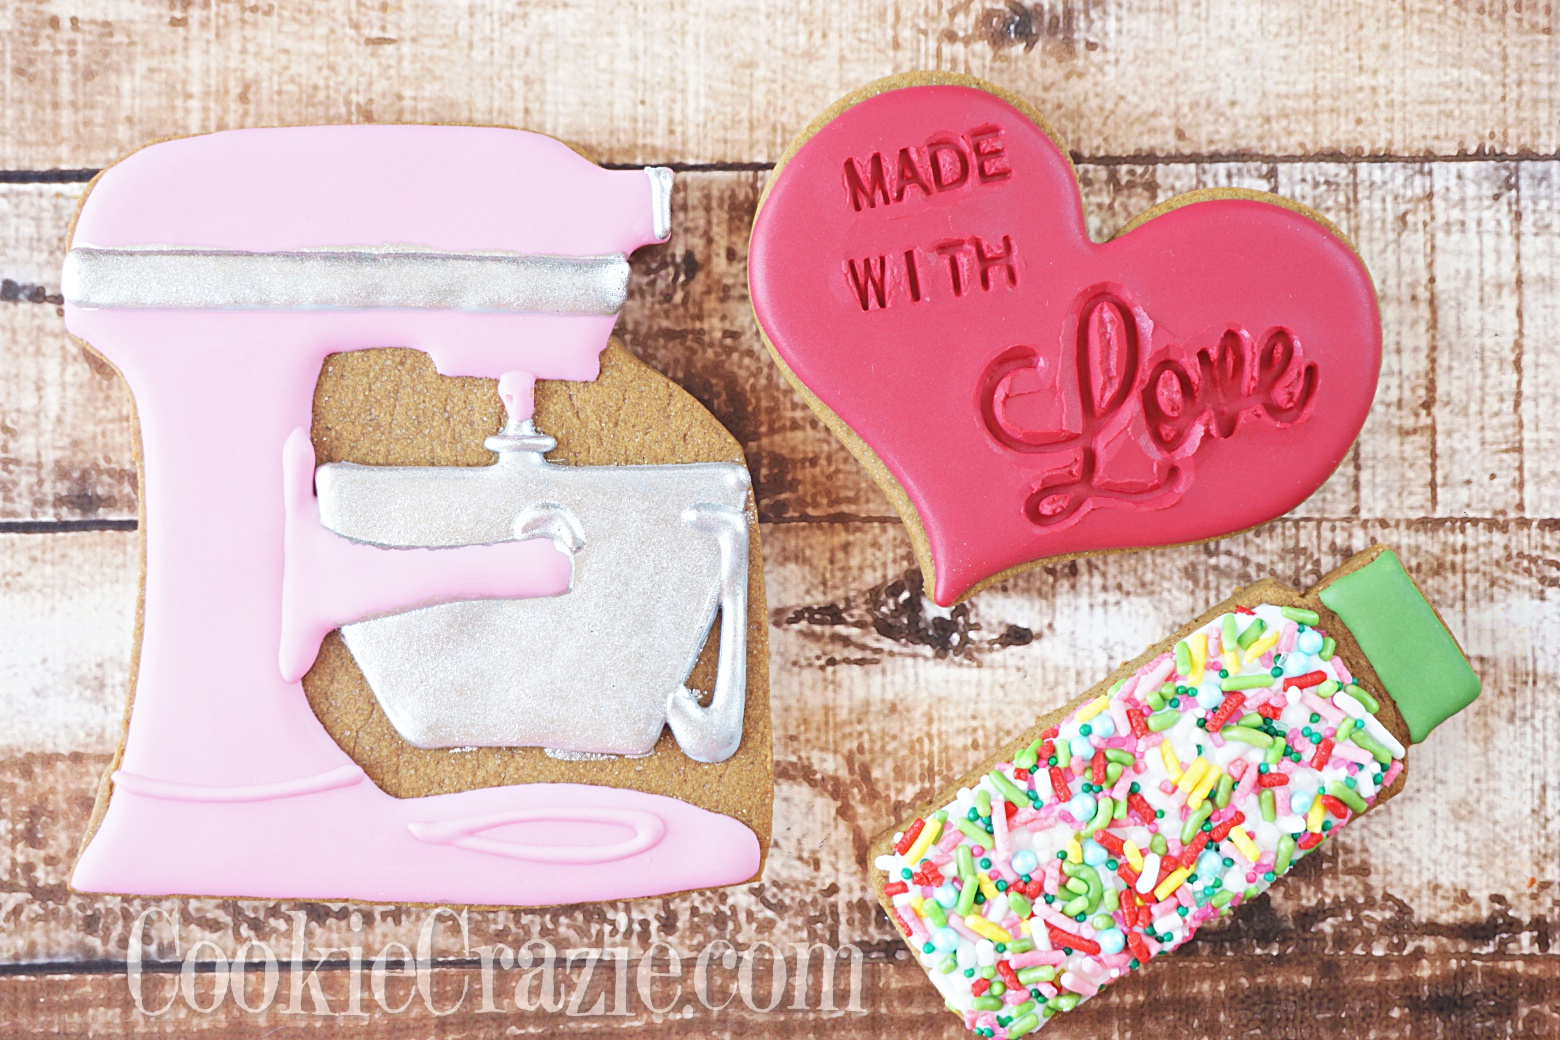 Made with Love Heart Decorated Sugar Cookies YouTube video  HERE